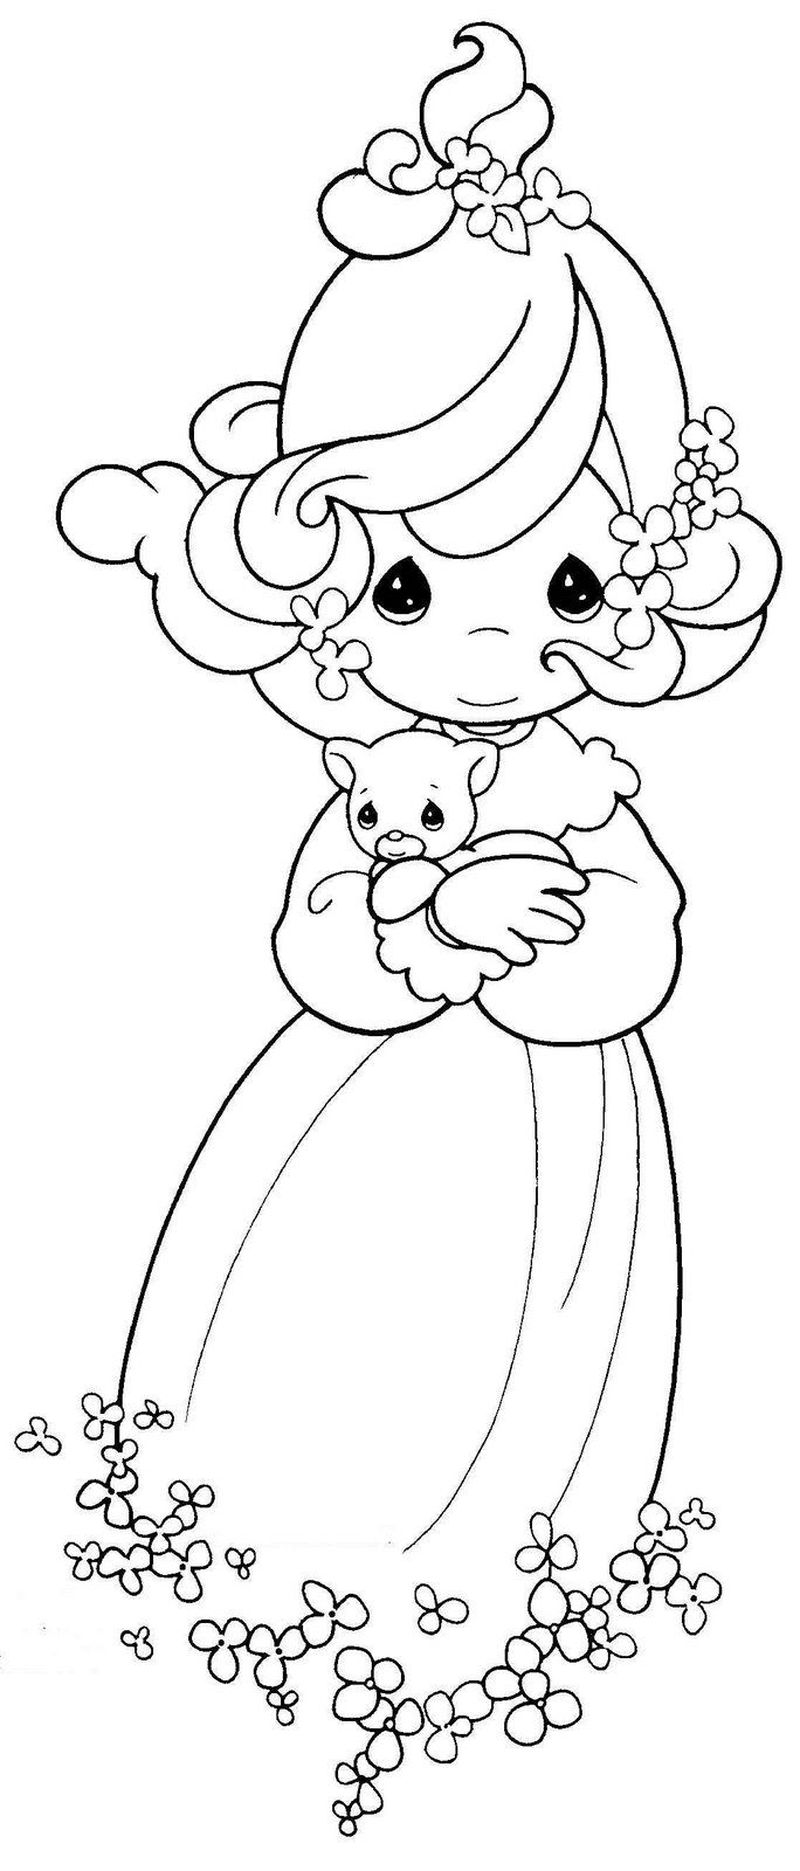 Free Precious Moments Christmas Coloring Pages